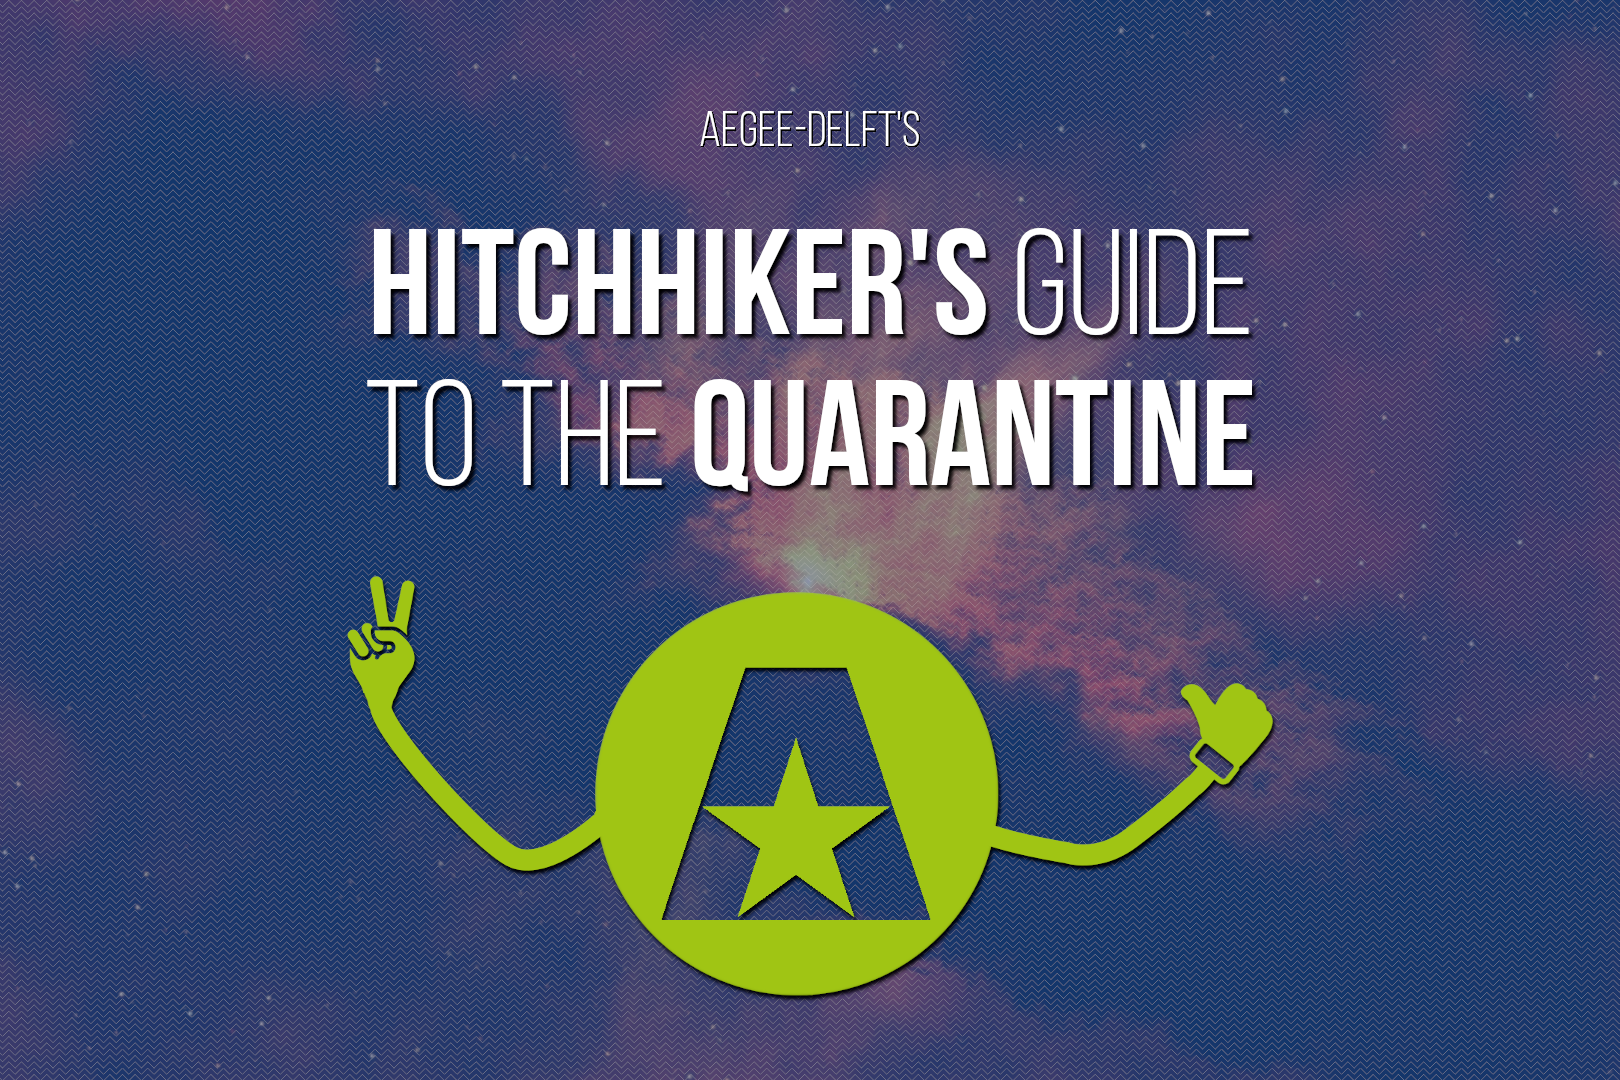 Hitchhiker's Guide to the Quarantine visual with a green alien floating in space